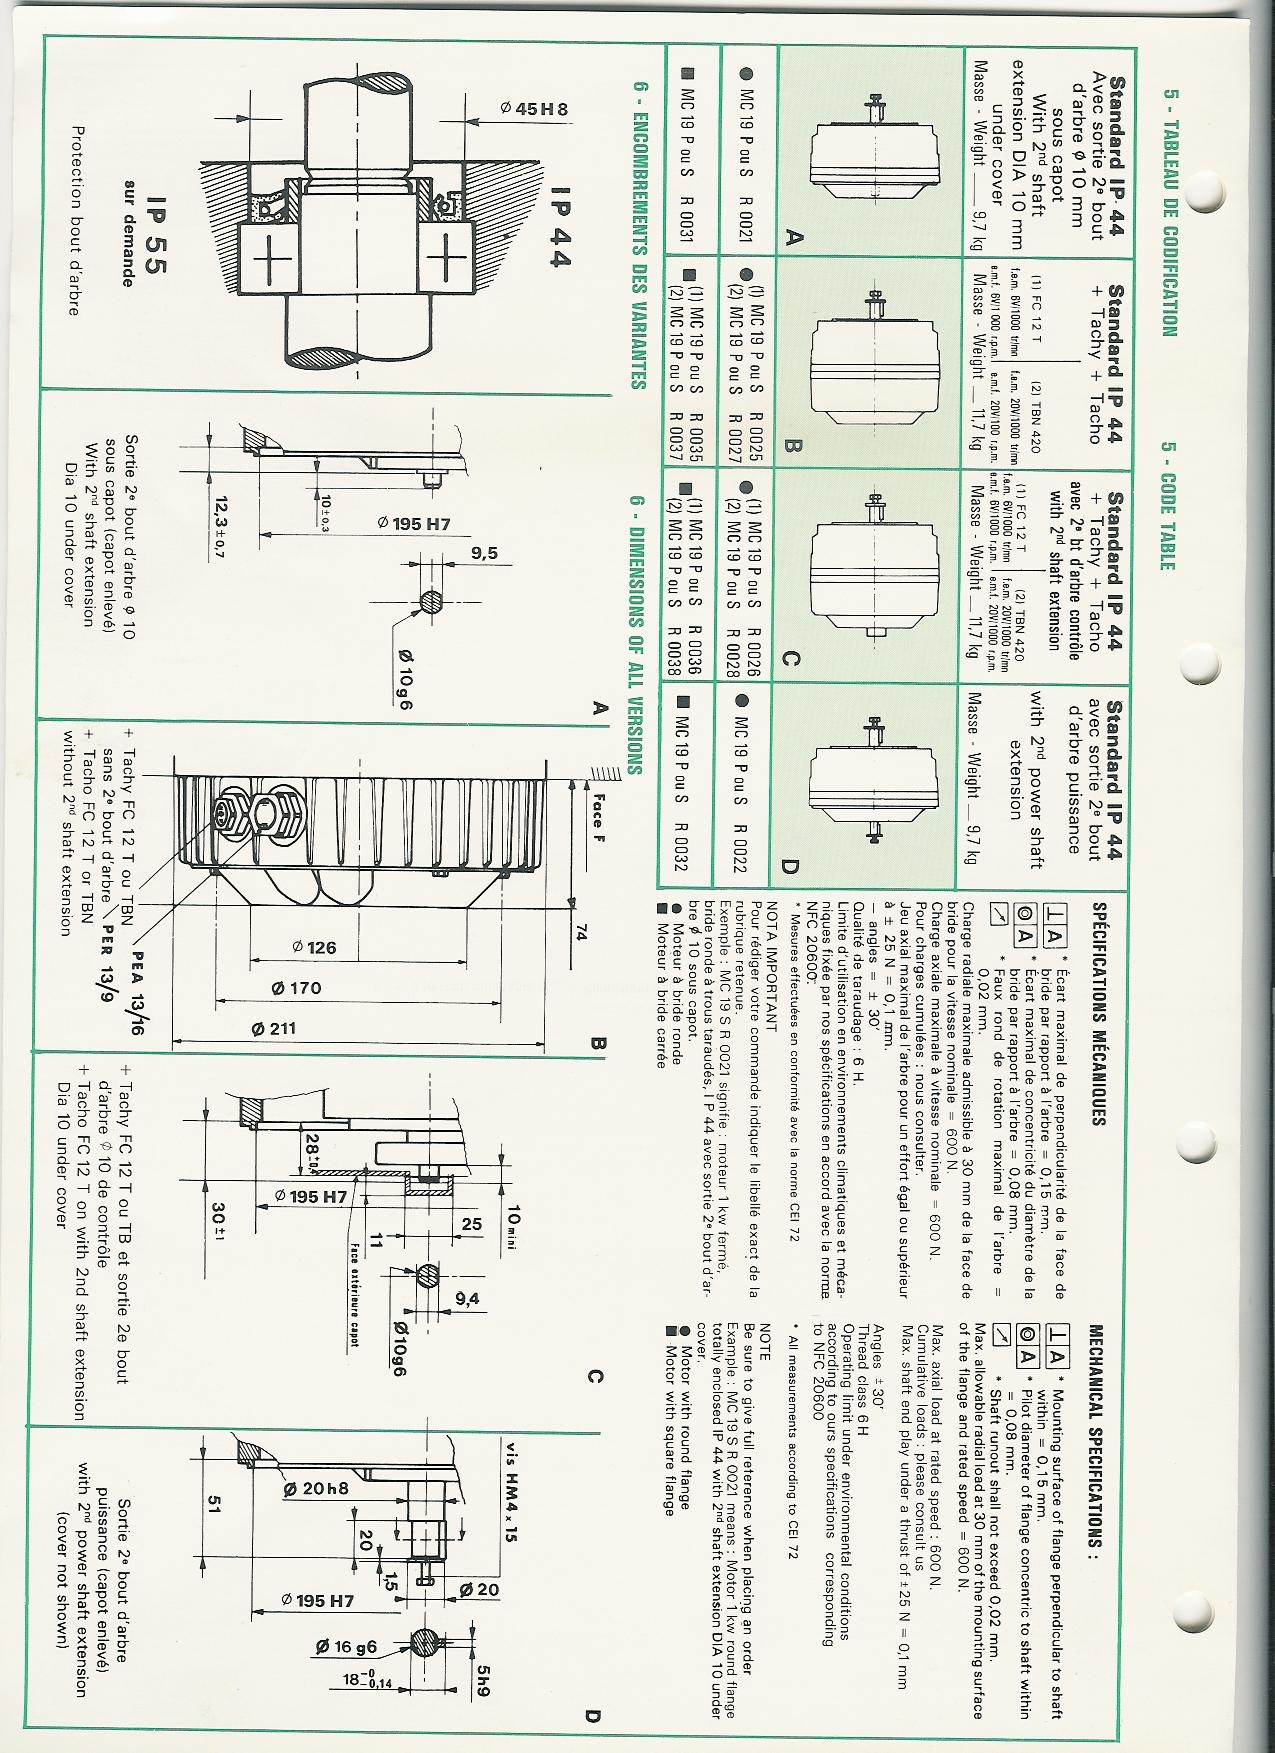 ac tech wiring diagram ac image wiring diagram lenze vfd wiring diagram lenze discover your wiring diagram on ac tech wiring diagram